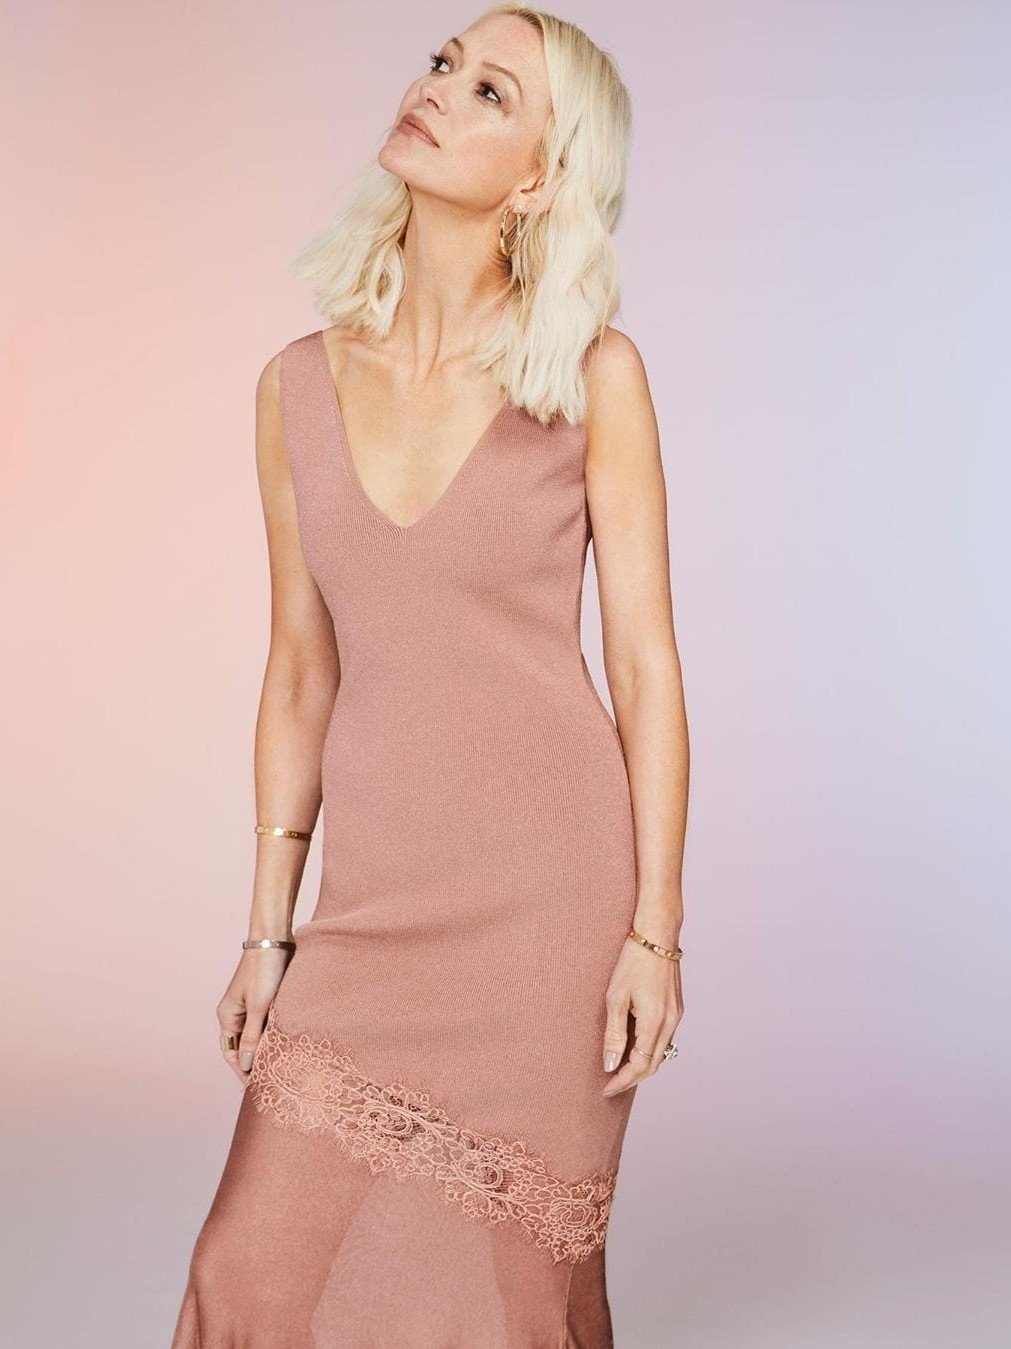 We Select… The Prettiest Plunge V-Neck Dresses Out There!